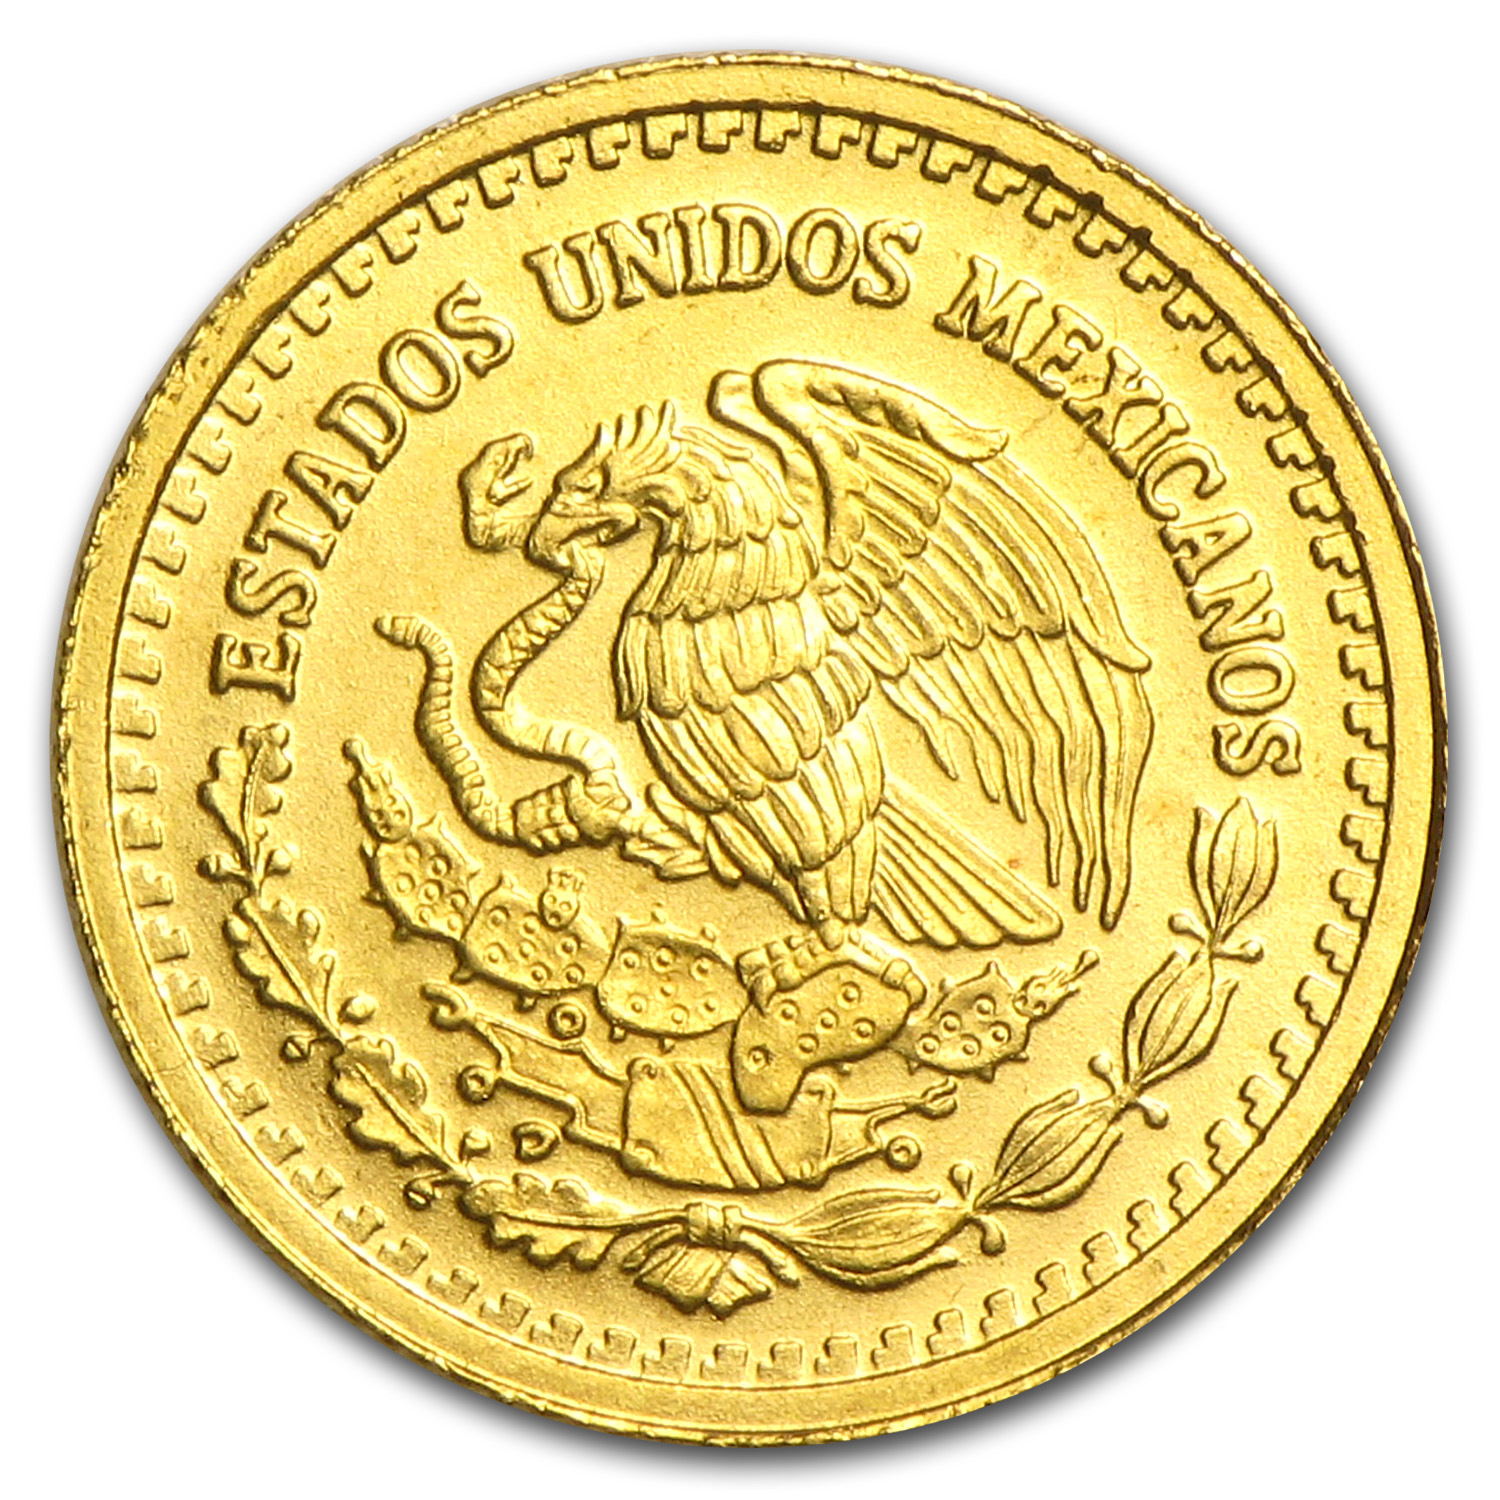 2007 Mexico 1/20 oz Gold Libertad BU